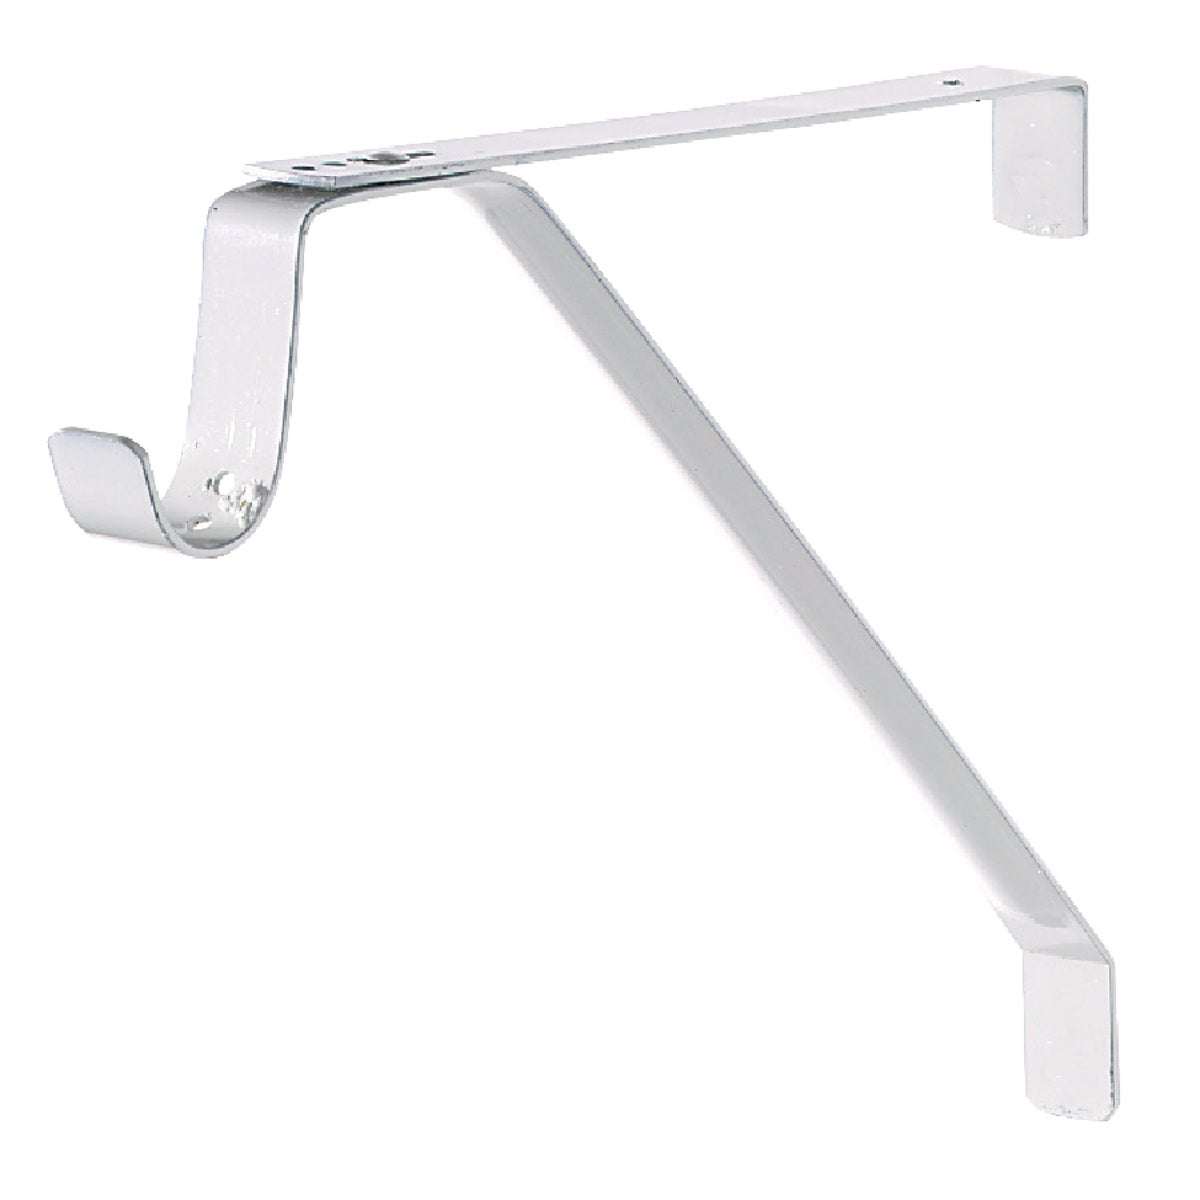 ADJUSTABLE SHELF BRACKET - RP-0043-WT by Knape & Vogt Mfg Co